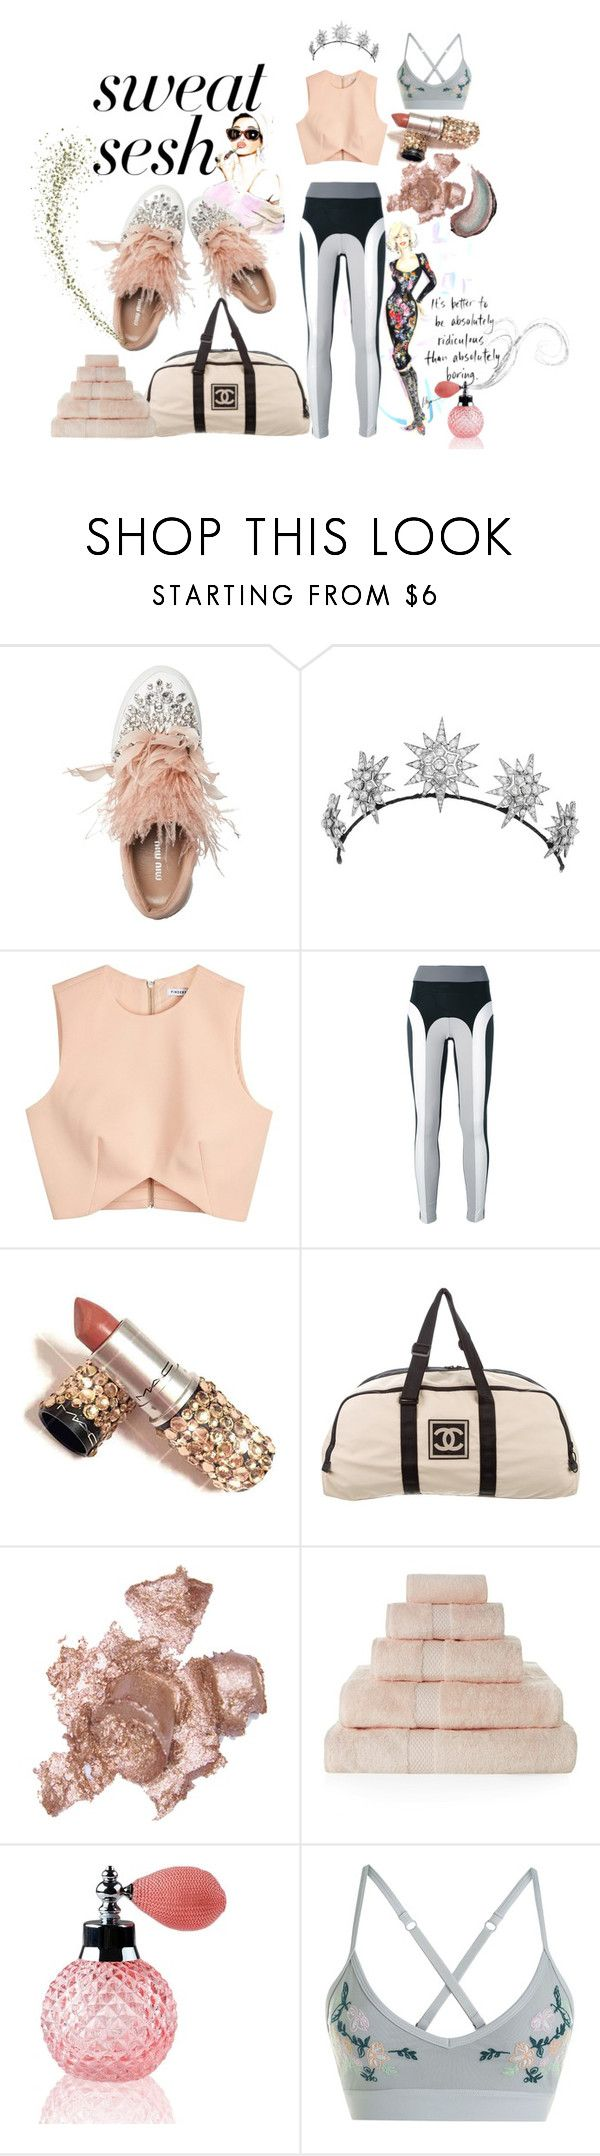 """""""gym style"""" by vinny1108 ❤ liked on Polyvore featuring Lilya, Miu Miu, Finders Keepers, No Ka'Oi, Chanel, By Terry, Yves Delorme, Lorna Jane, Butter London and sweatsesh"""